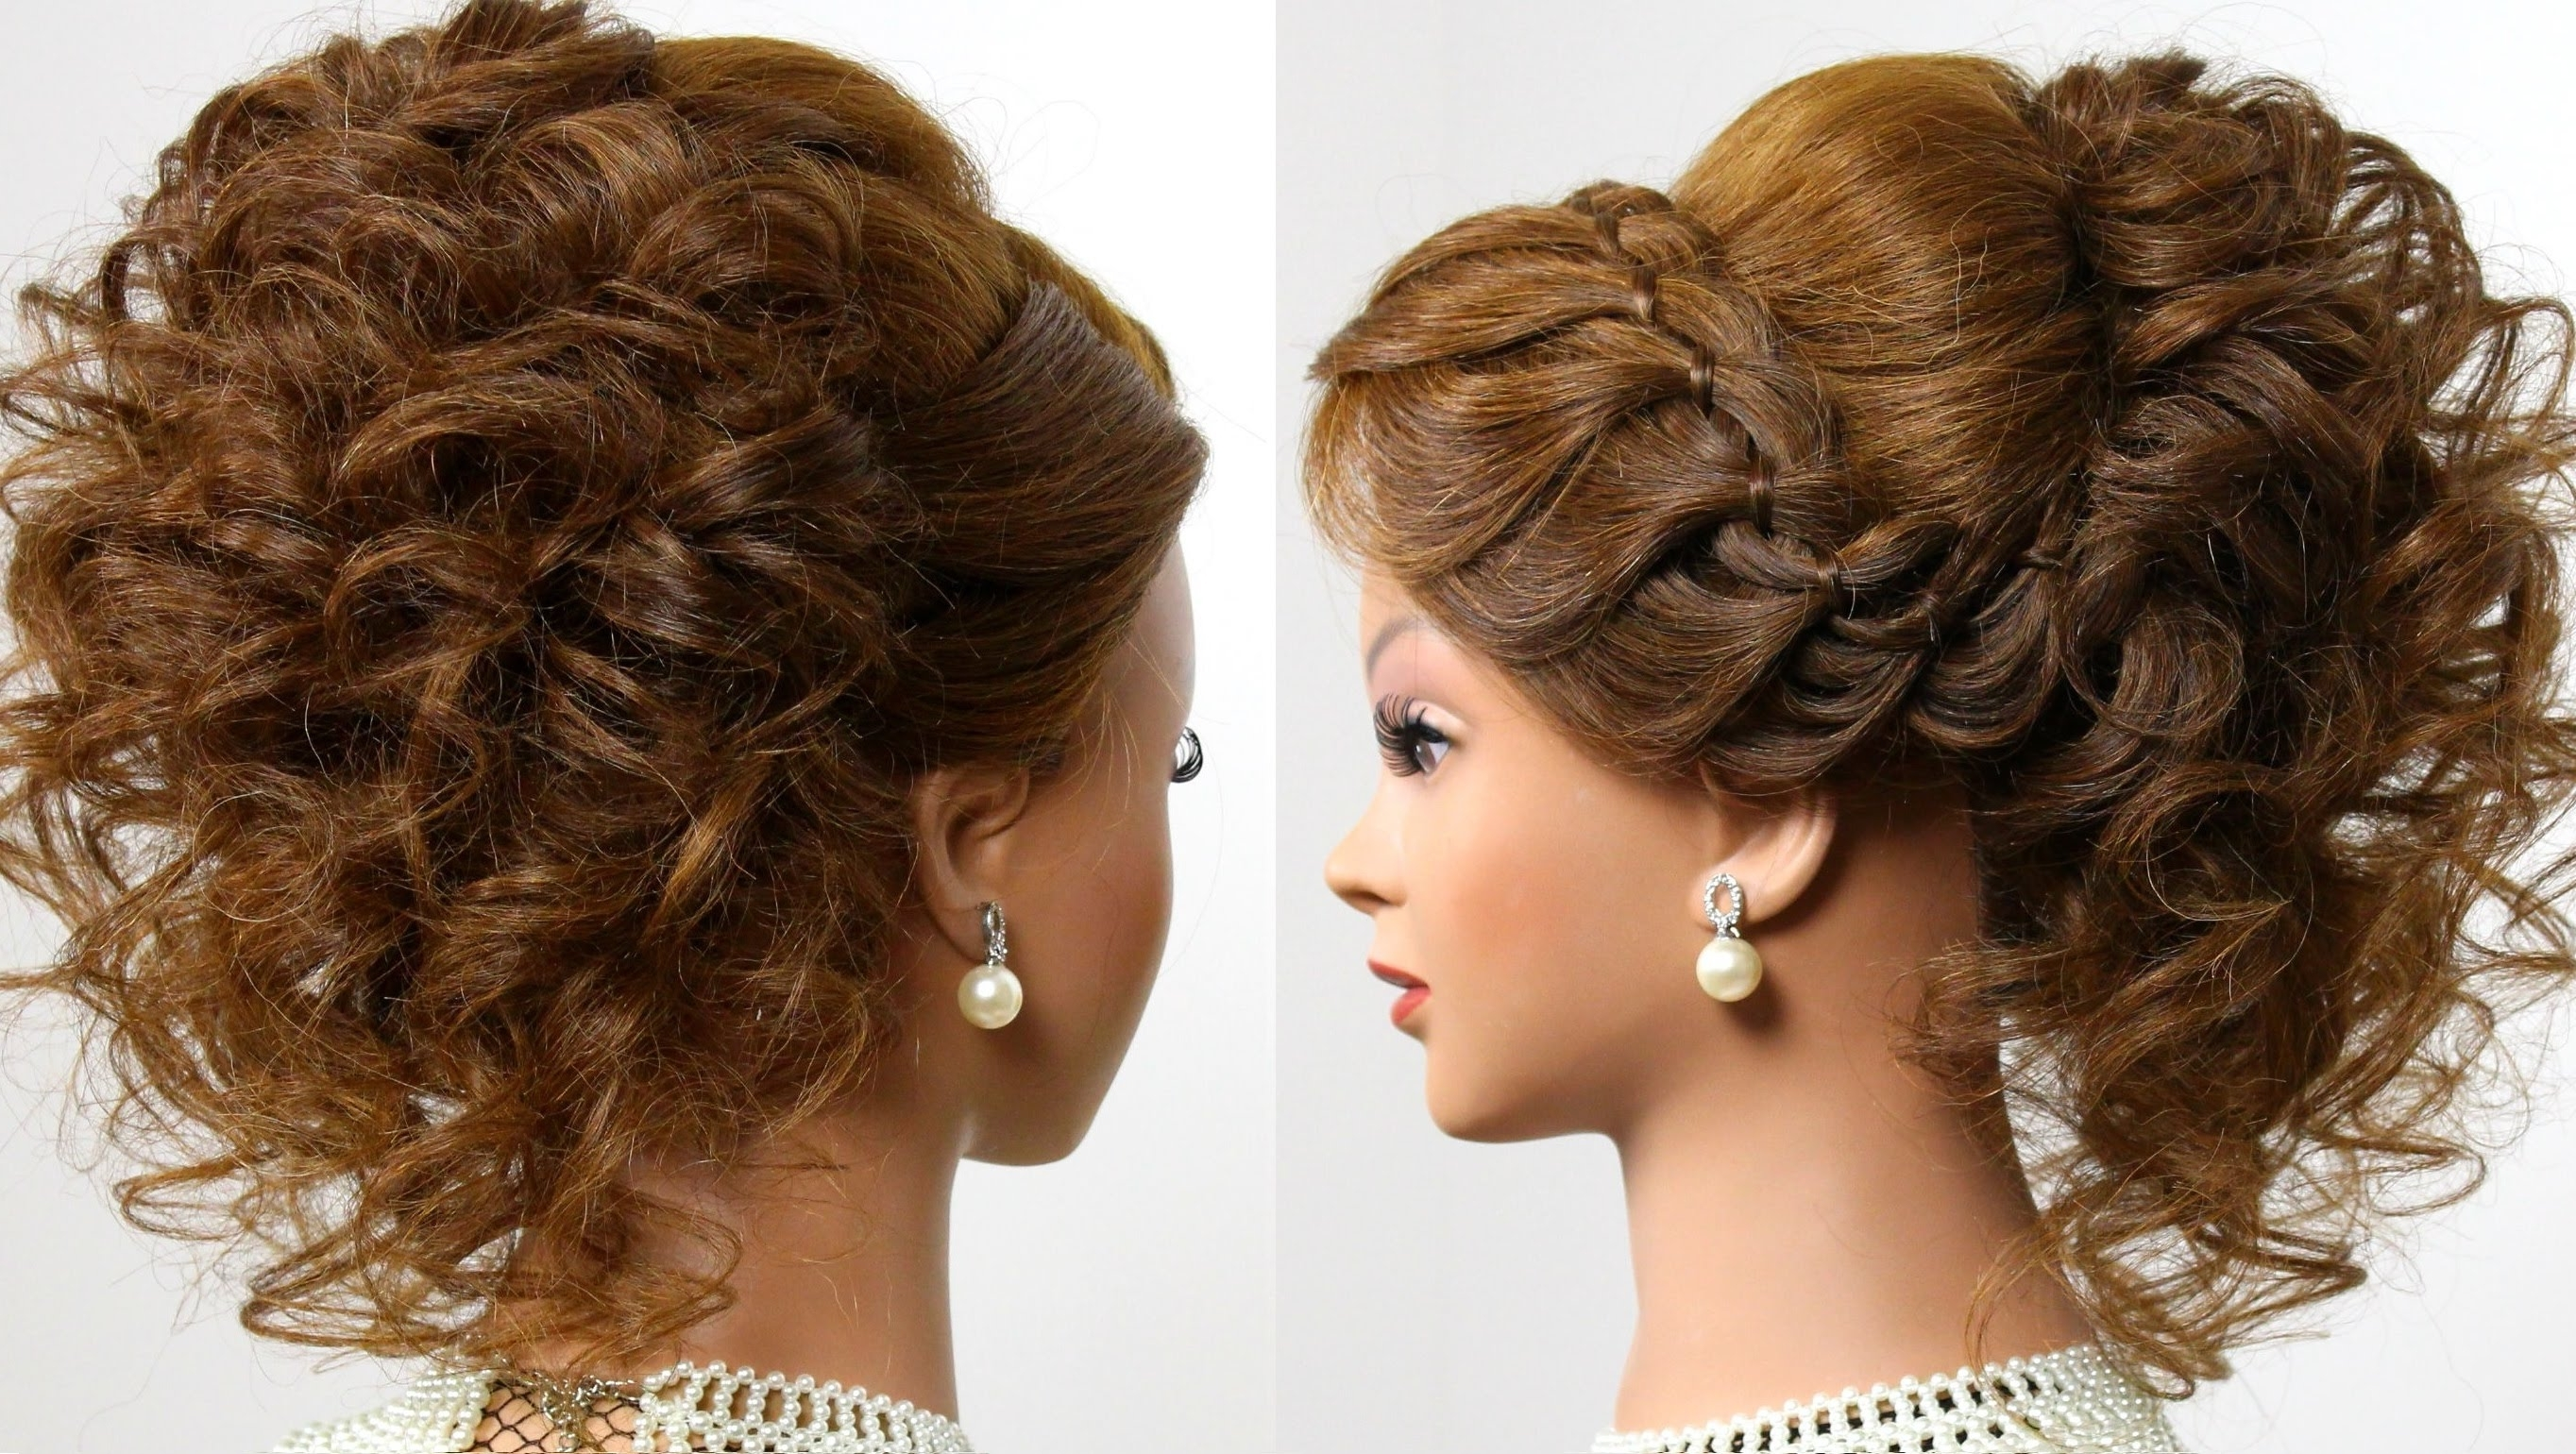 Curly Wedding Prom Hairstyle For Long Hair Sensational Romantic Regarding Bridal Updo Hairstyles For Long Hair (View 15 of 15)